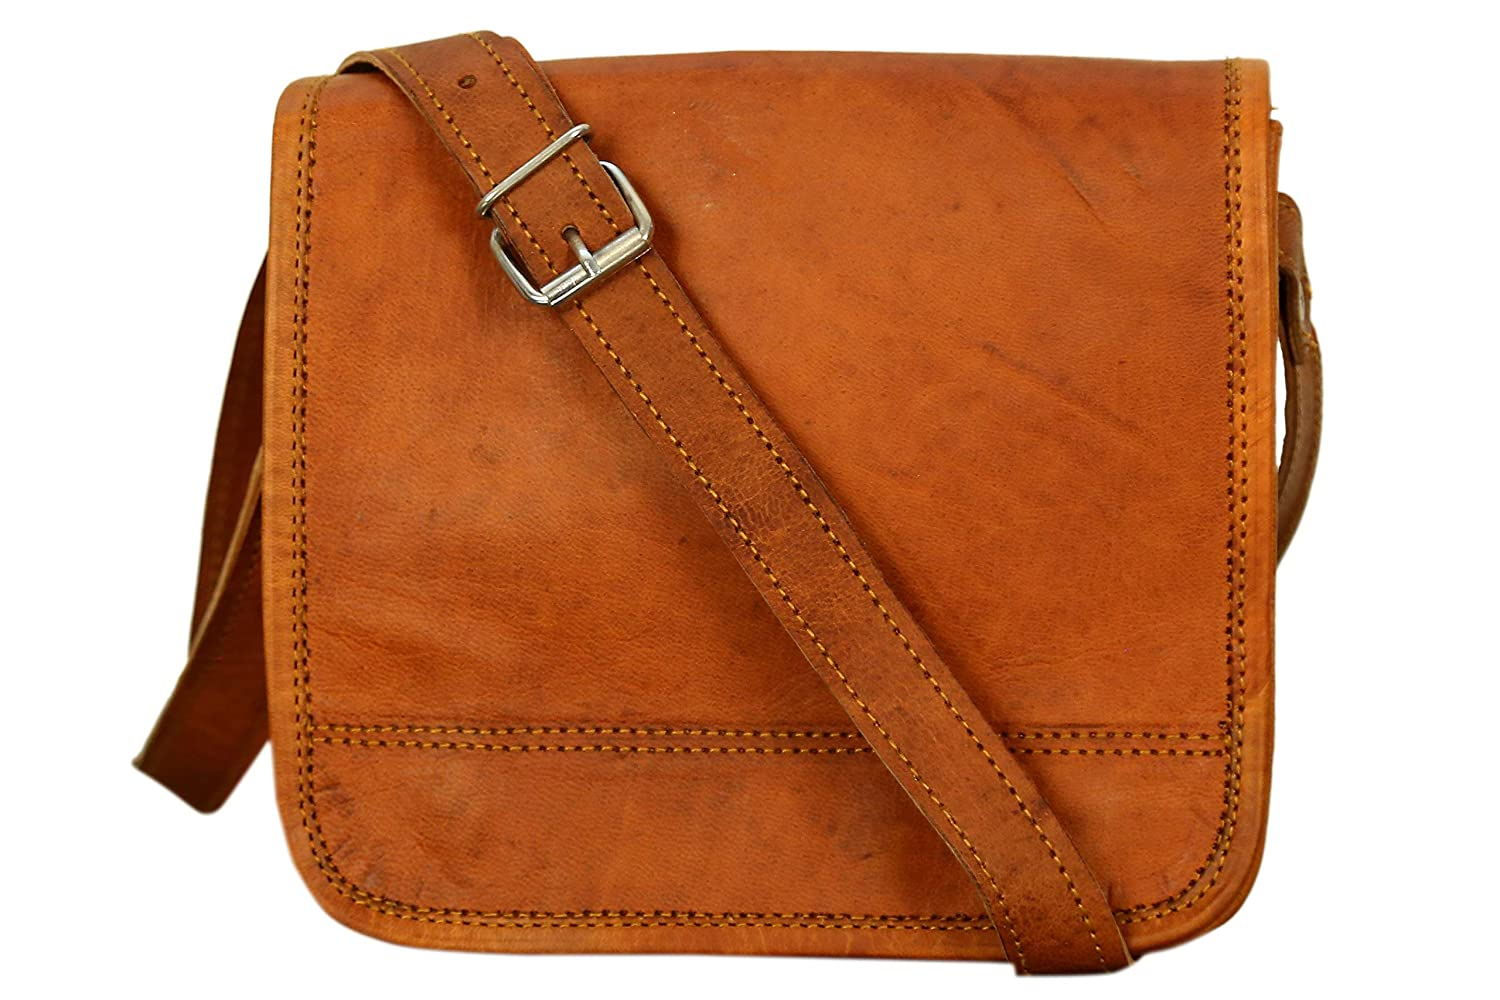 cross body bag in vintage style by SR Leather Small, Vintage Brown Genuine Goat leather messenger bag